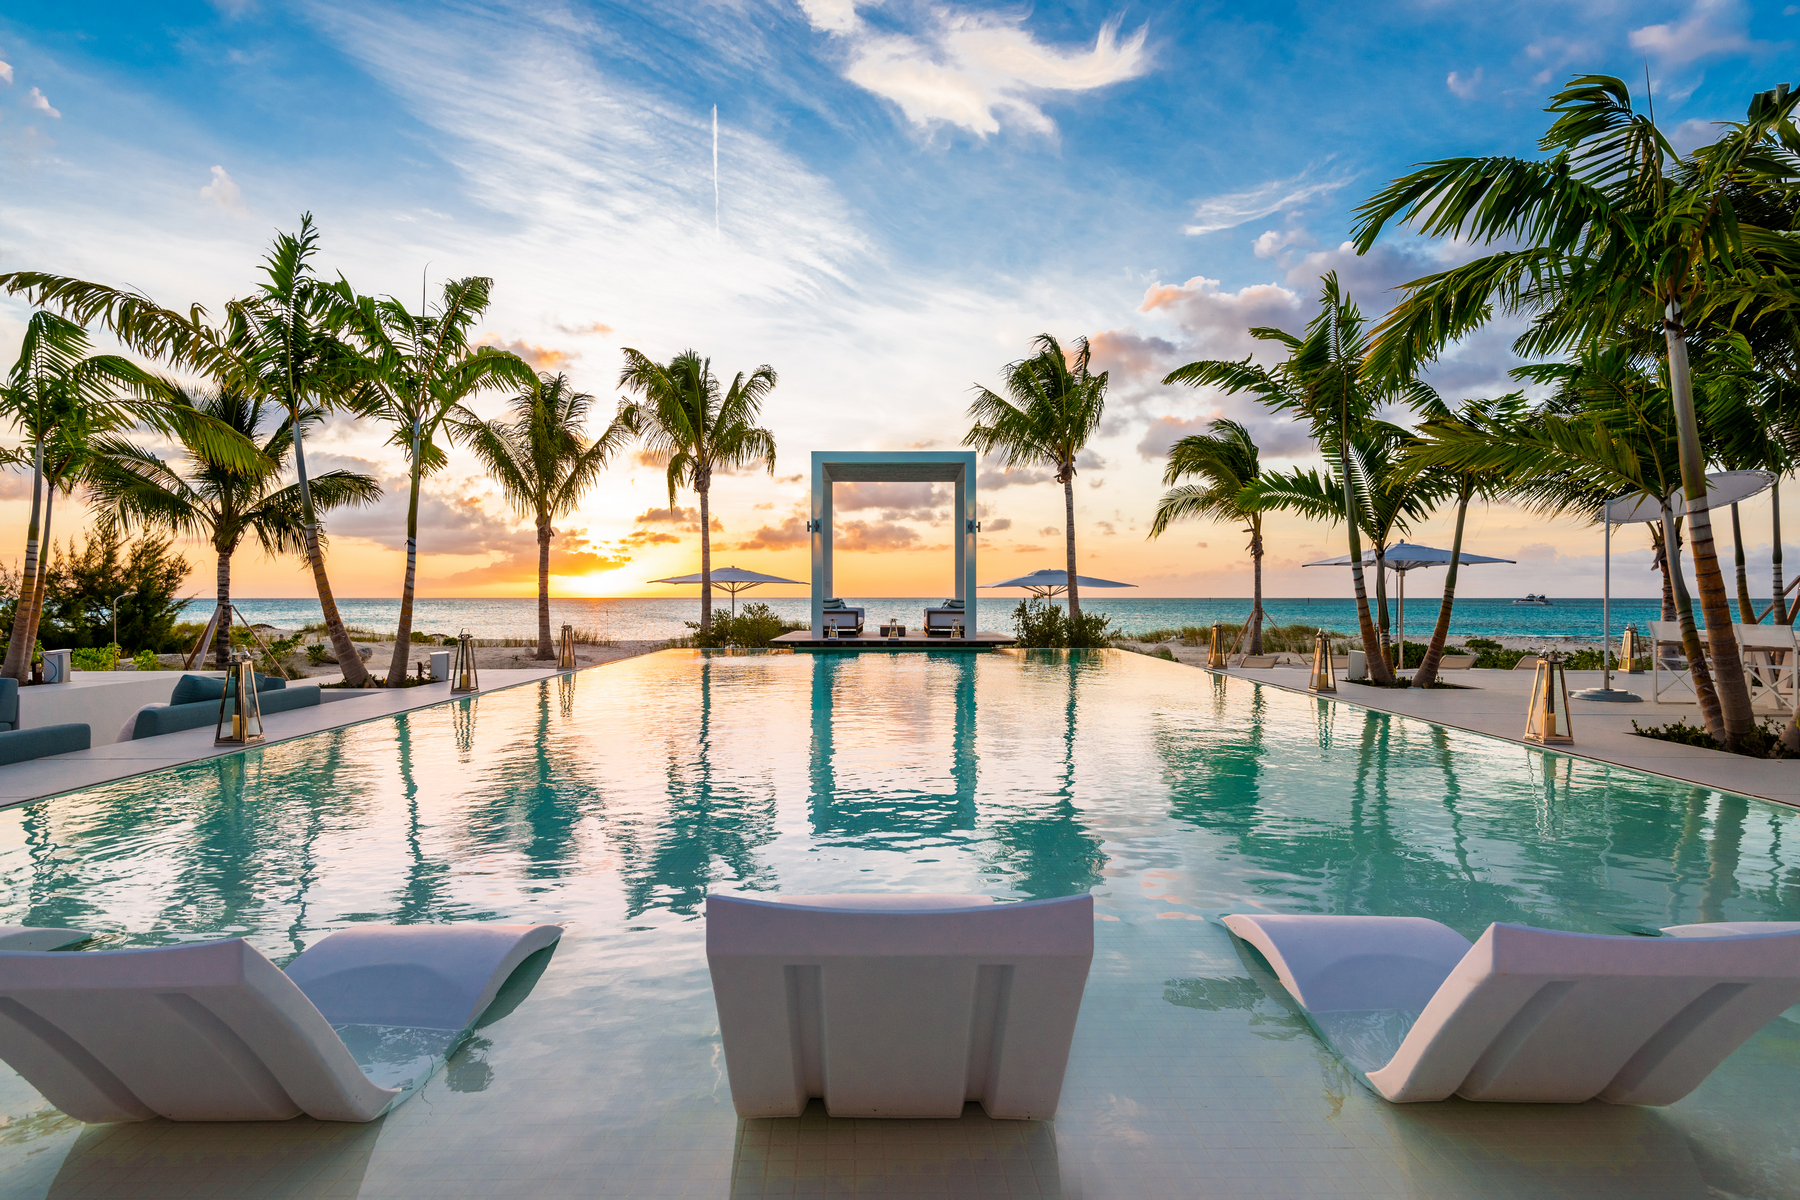 Single Family Homes for Sale at Emerald Pavilion Leeward, Providenciales Turks And Caicos Islands